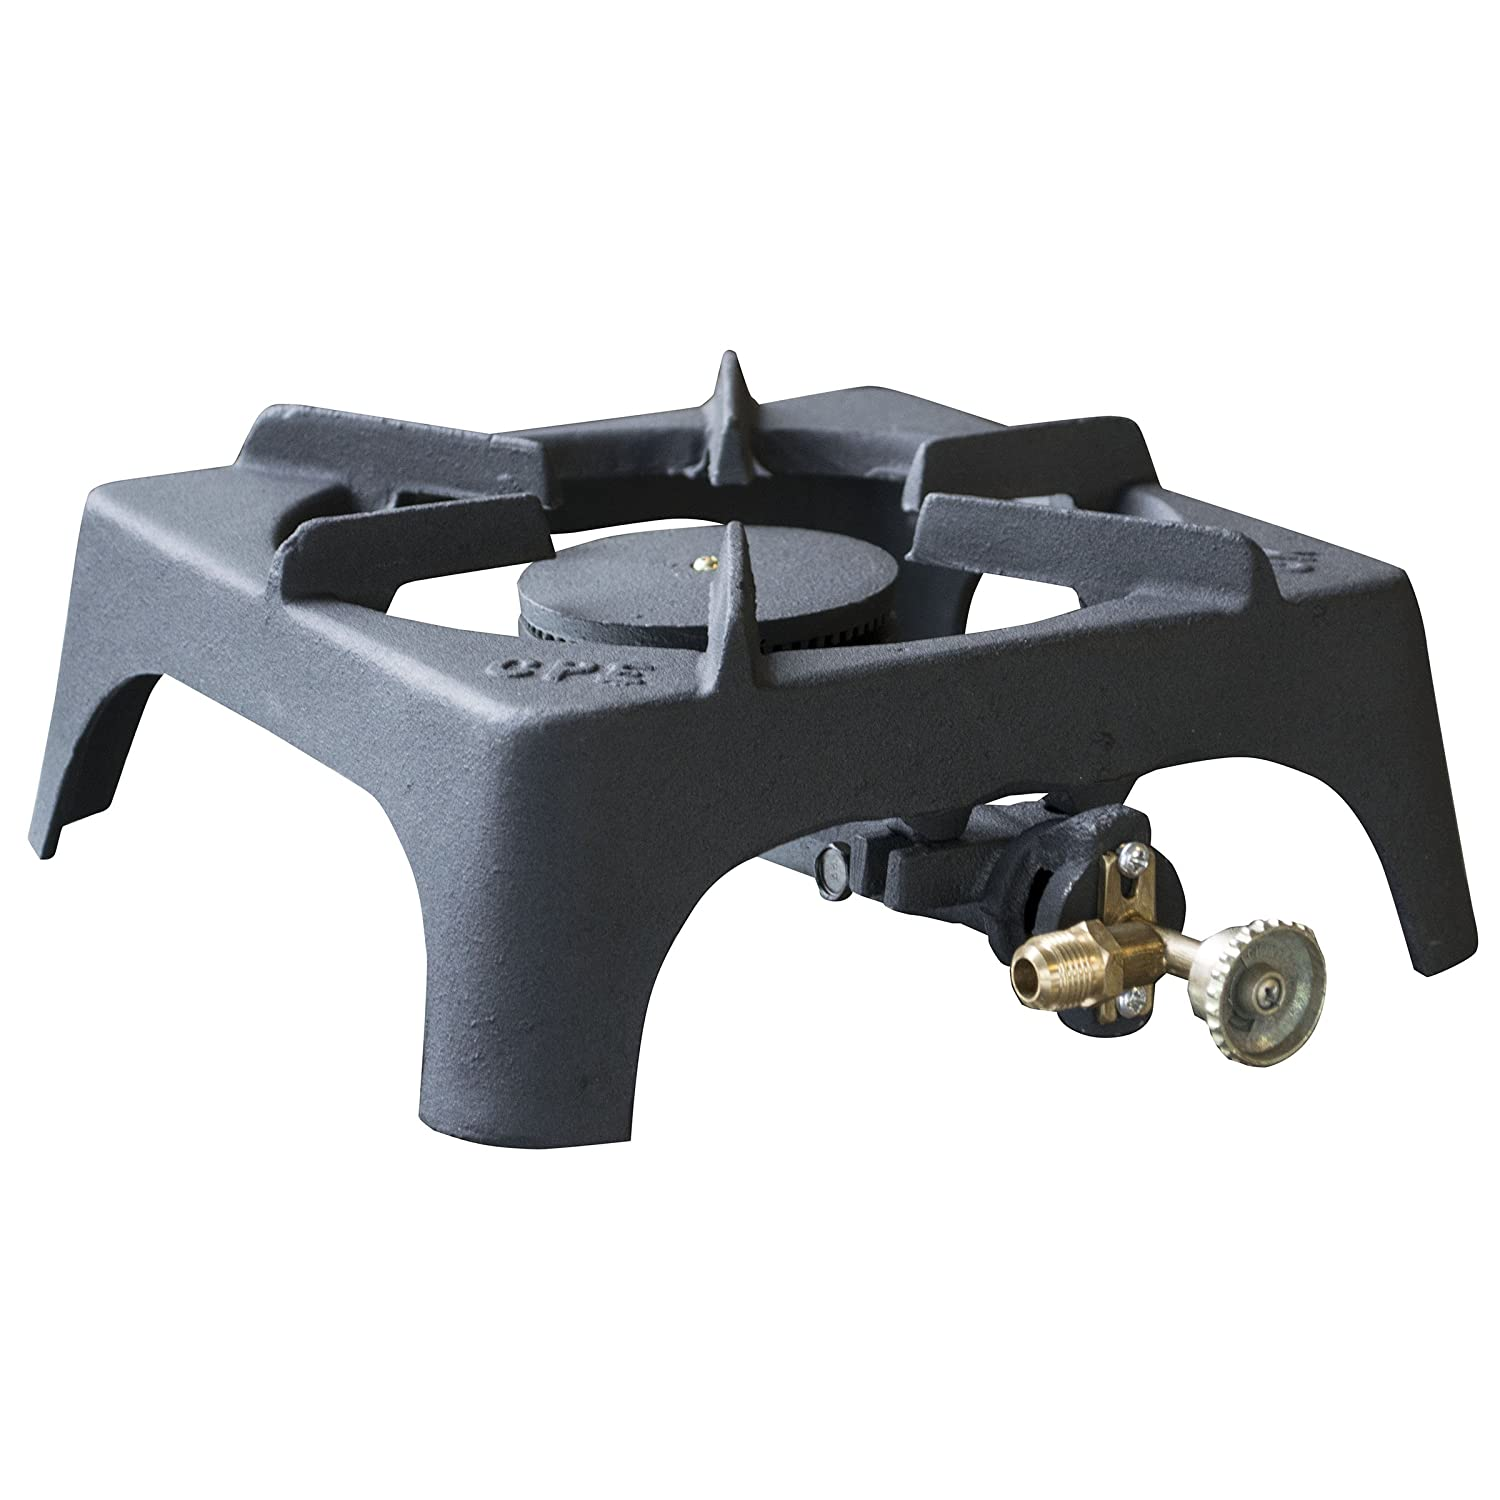 Sportsman Series Portable Single Burner Cast Iron Stove